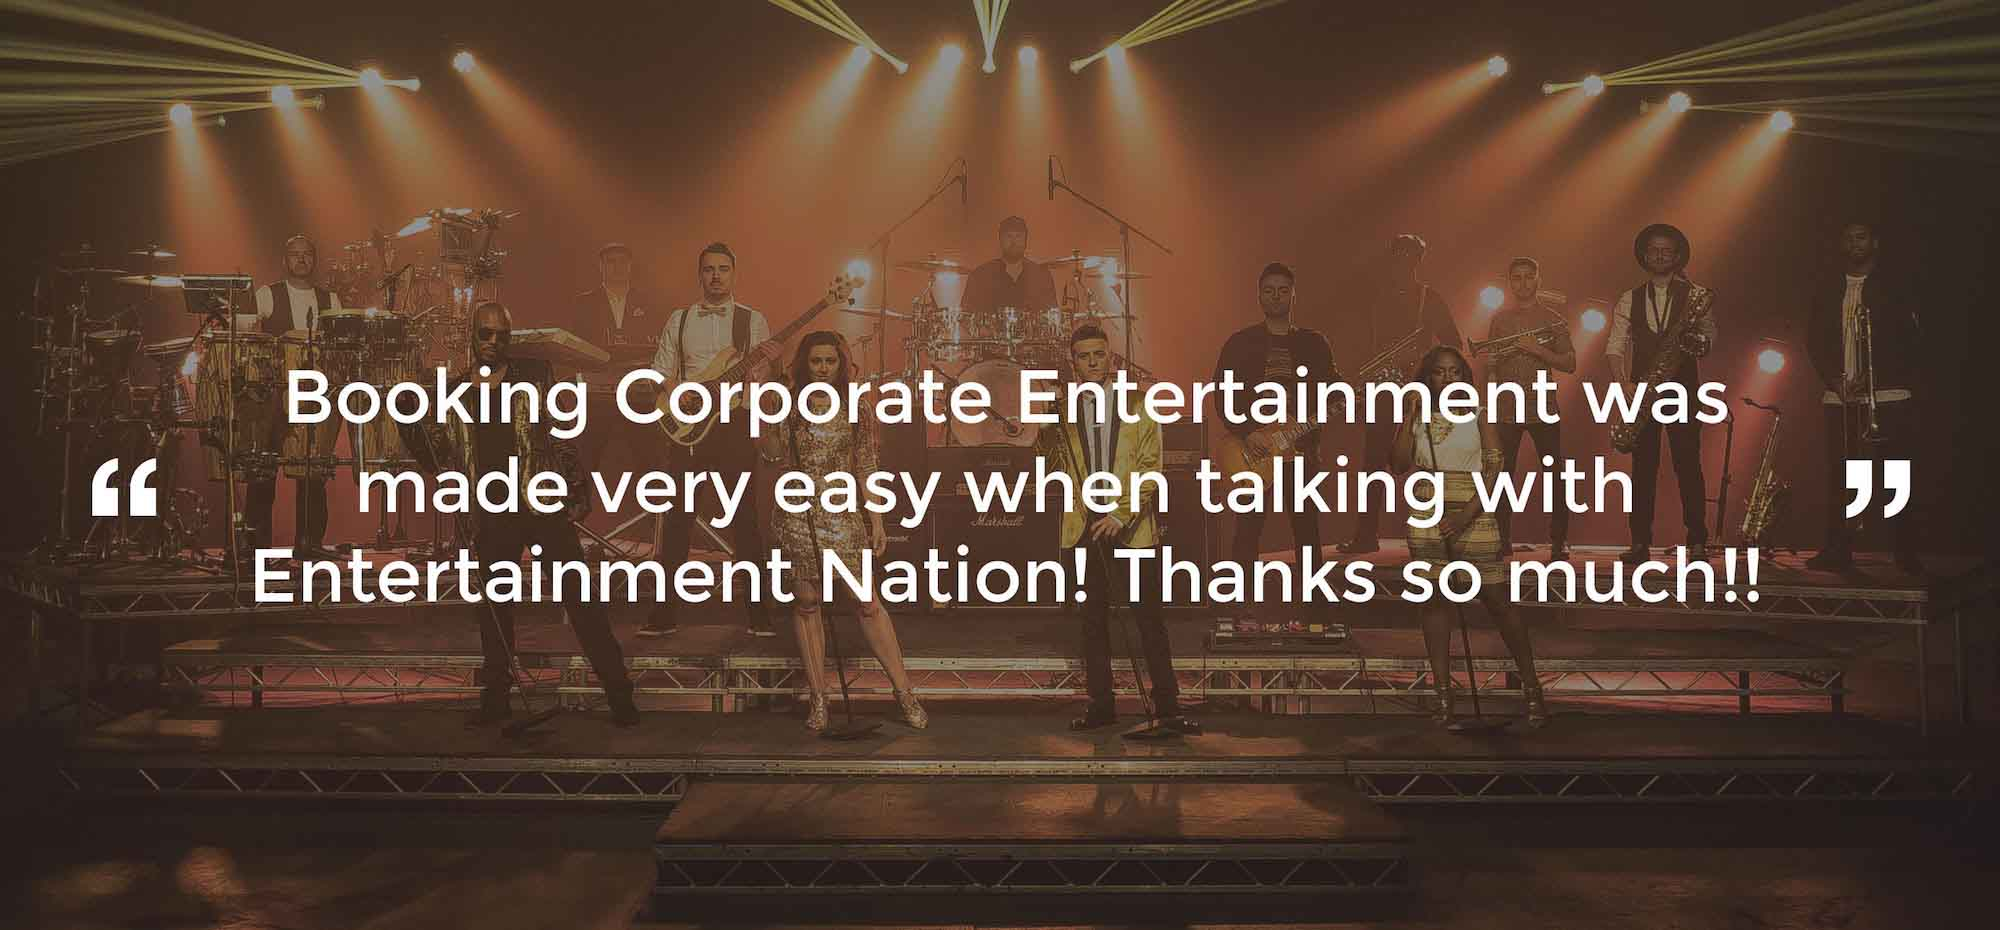 Review of Corporate Entertainment Cardiff